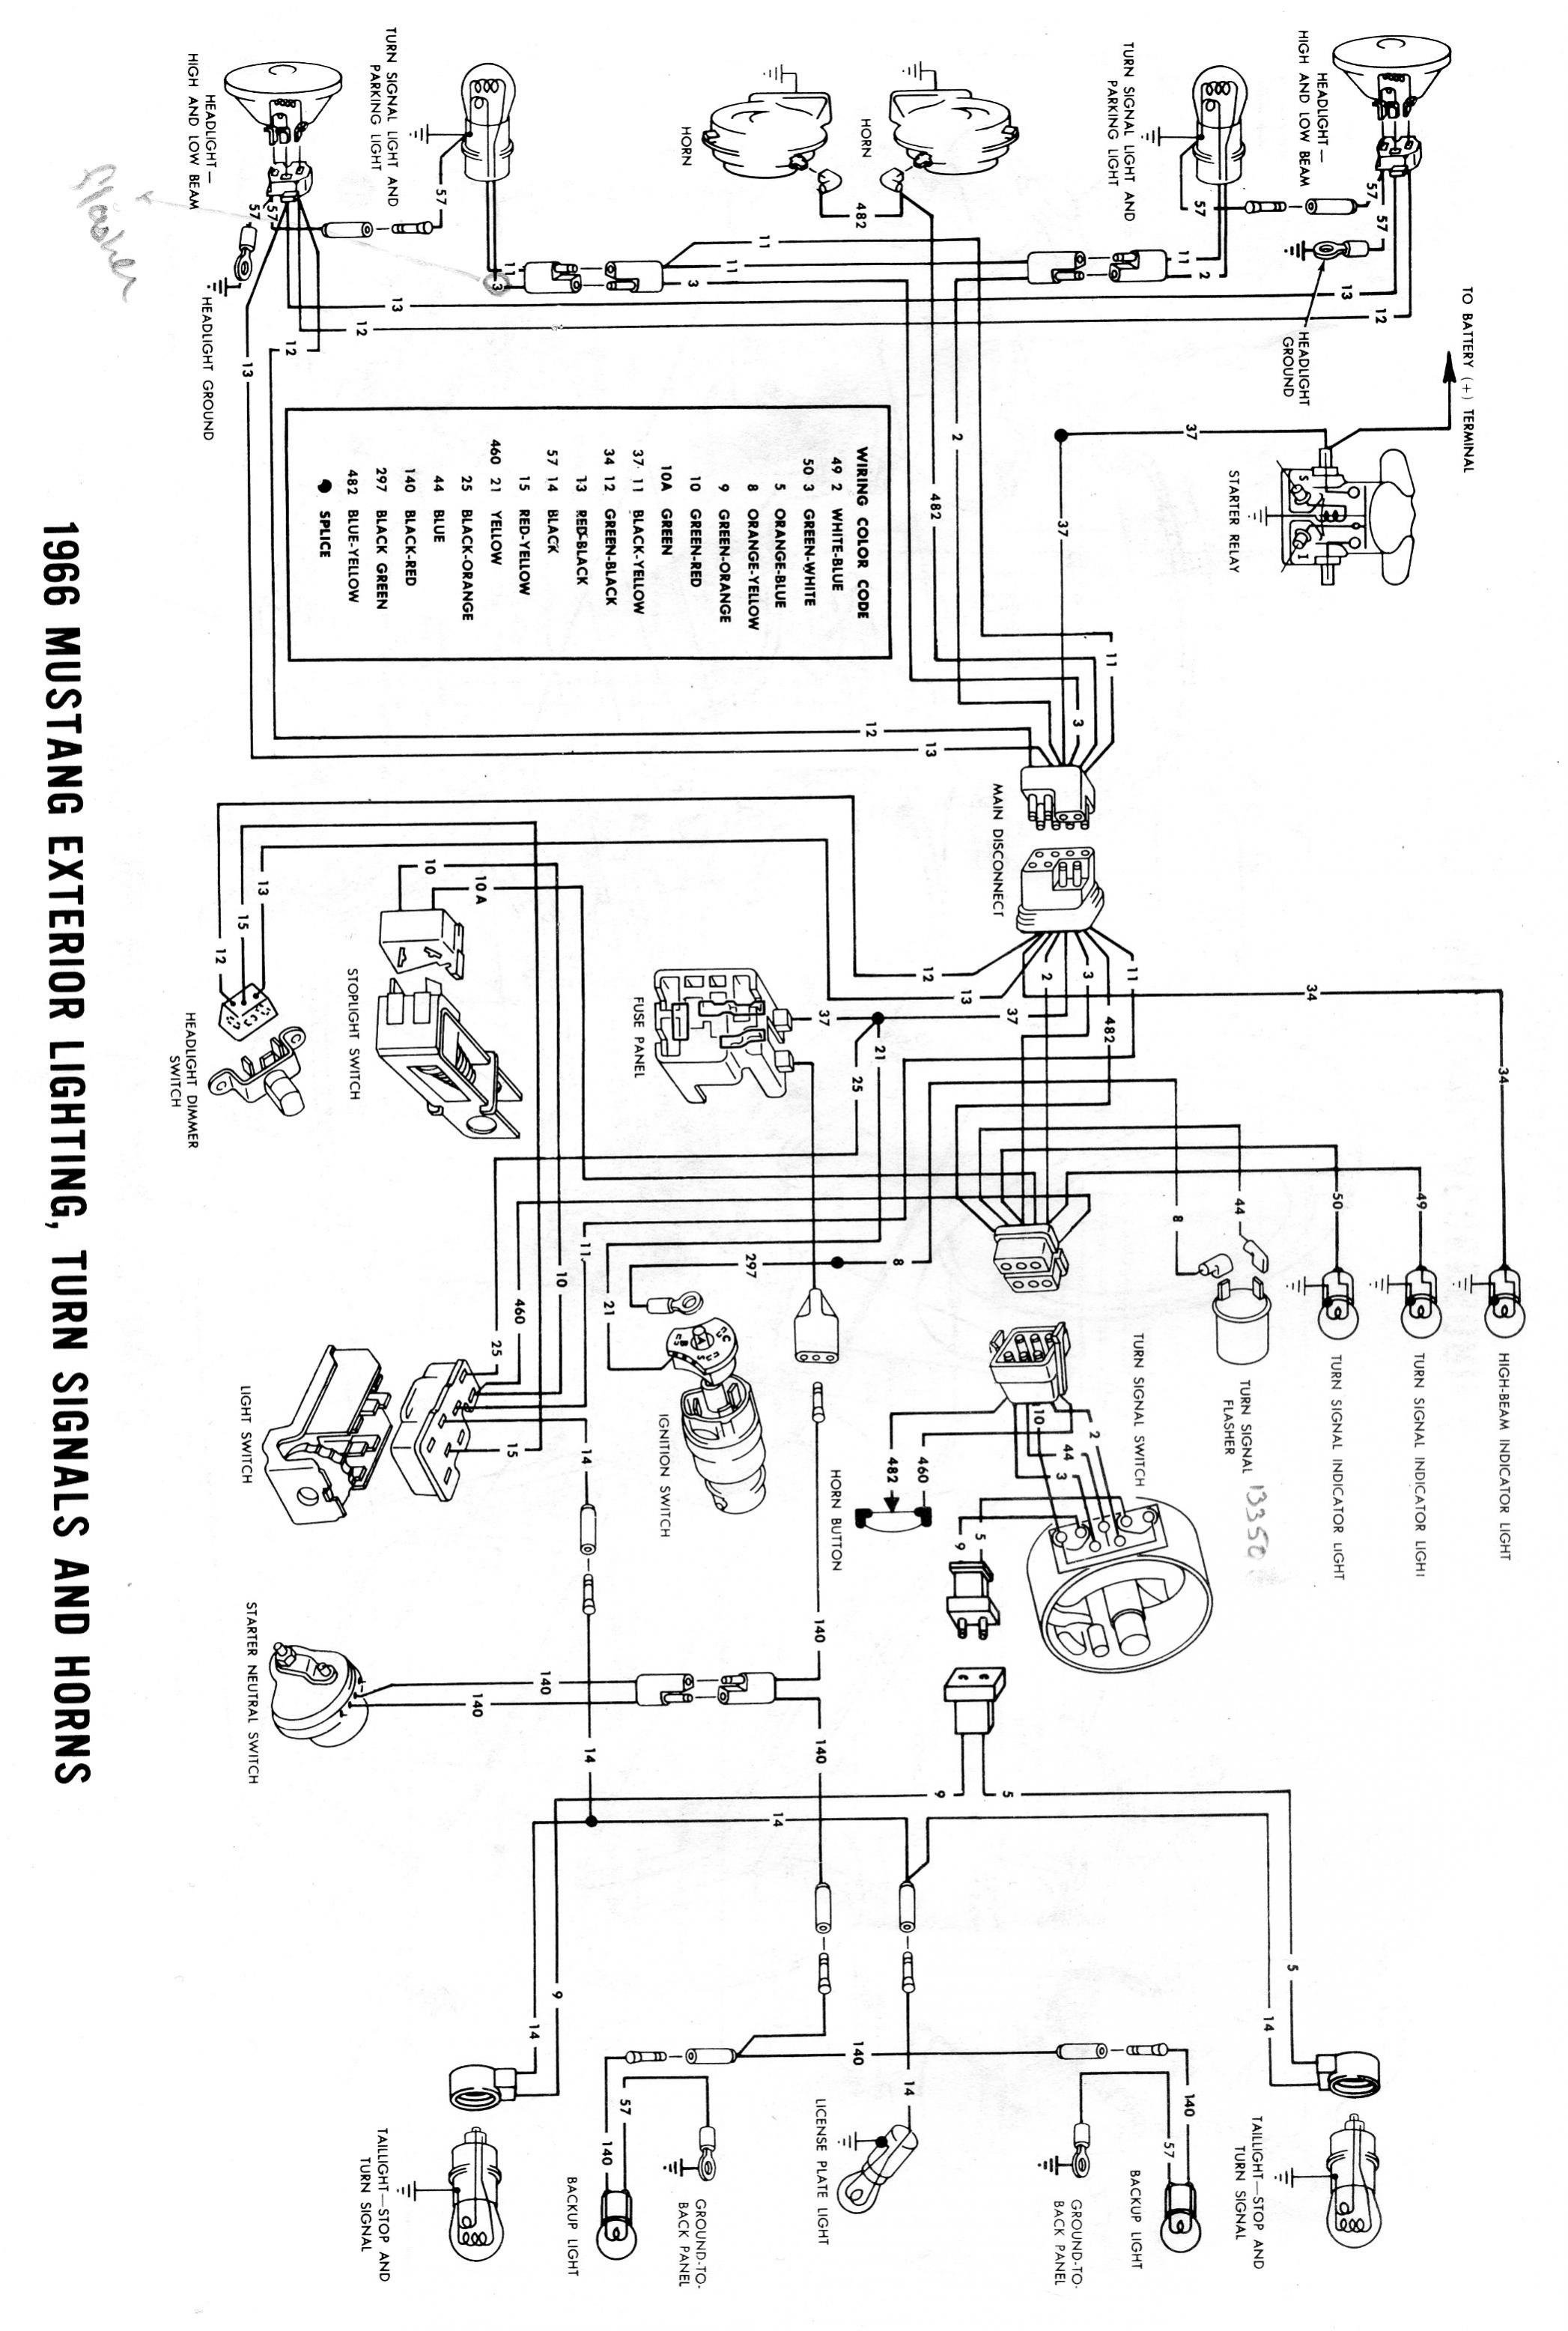 1973 Ford Mustang Wiring Diagram - 13.5.geuzencollege-examentraining  Ford Ranchero Wiring Diagram on amc amx wiring diagrams, chrysler lebaron wiring diagrams, volvo 240 wiring diagrams, dodge dakota wiring diagrams, jeep wrangler wiring diagrams, imperial wiring diagrams, ford ranchero seats, peterbilt wiring diagrams, ford ranchero engine, oldsmobile alero wiring diagrams, mercury sable wiring diagrams, ford ranchero parts, jeep cj wiring diagrams, dodge ramcharger wiring diagrams, jeep patriot wiring diagrams, pontiac grand prix wiring diagrams, oldsmobile 98 wiring diagrams, plymouth barracuda wiring diagrams, chrysler concorde wiring diagrams, saab 9-3 wiring diagrams,